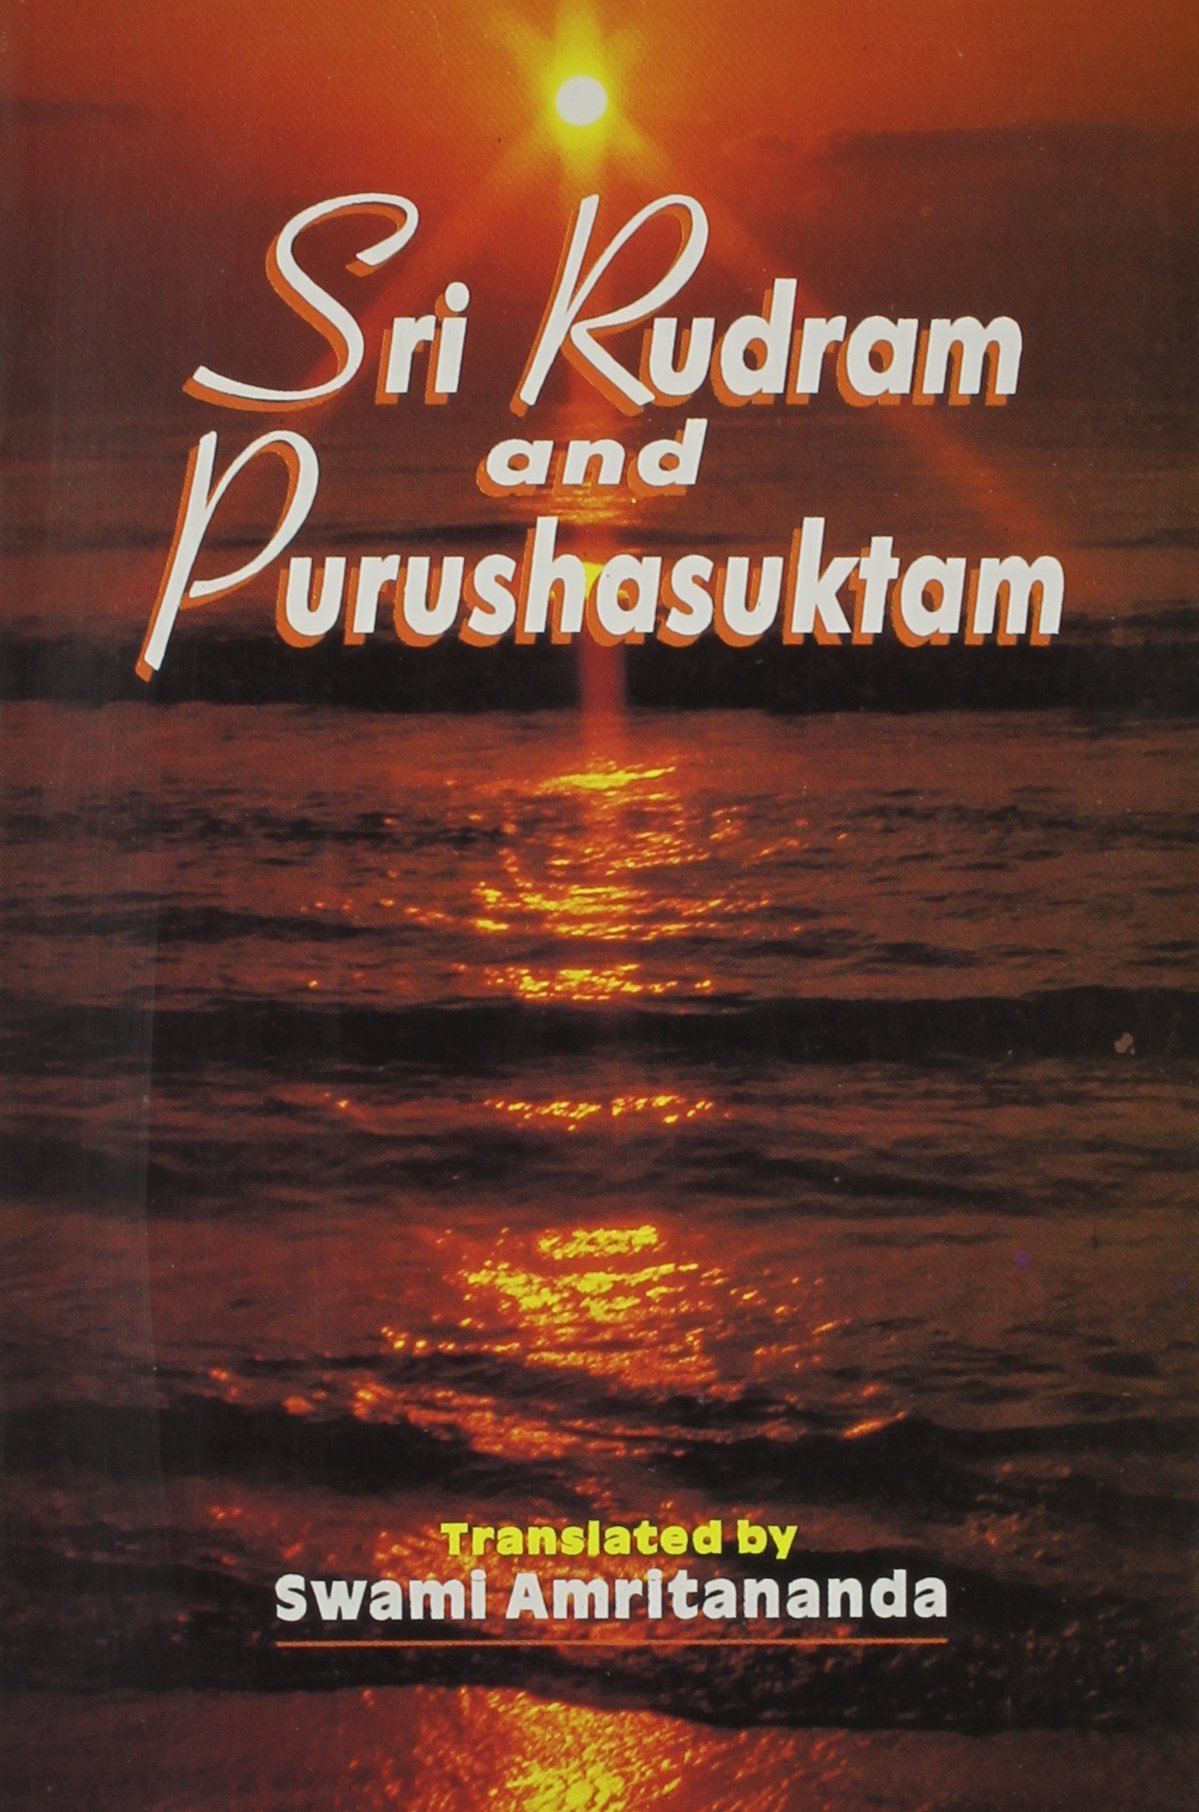 Buy sri rudram purushasuktam book online at low prices in india buy sri rudram purushasuktam book online at low prices in india sri rudram purushasuktam reviews ratings amazon fandeluxe Choice Image